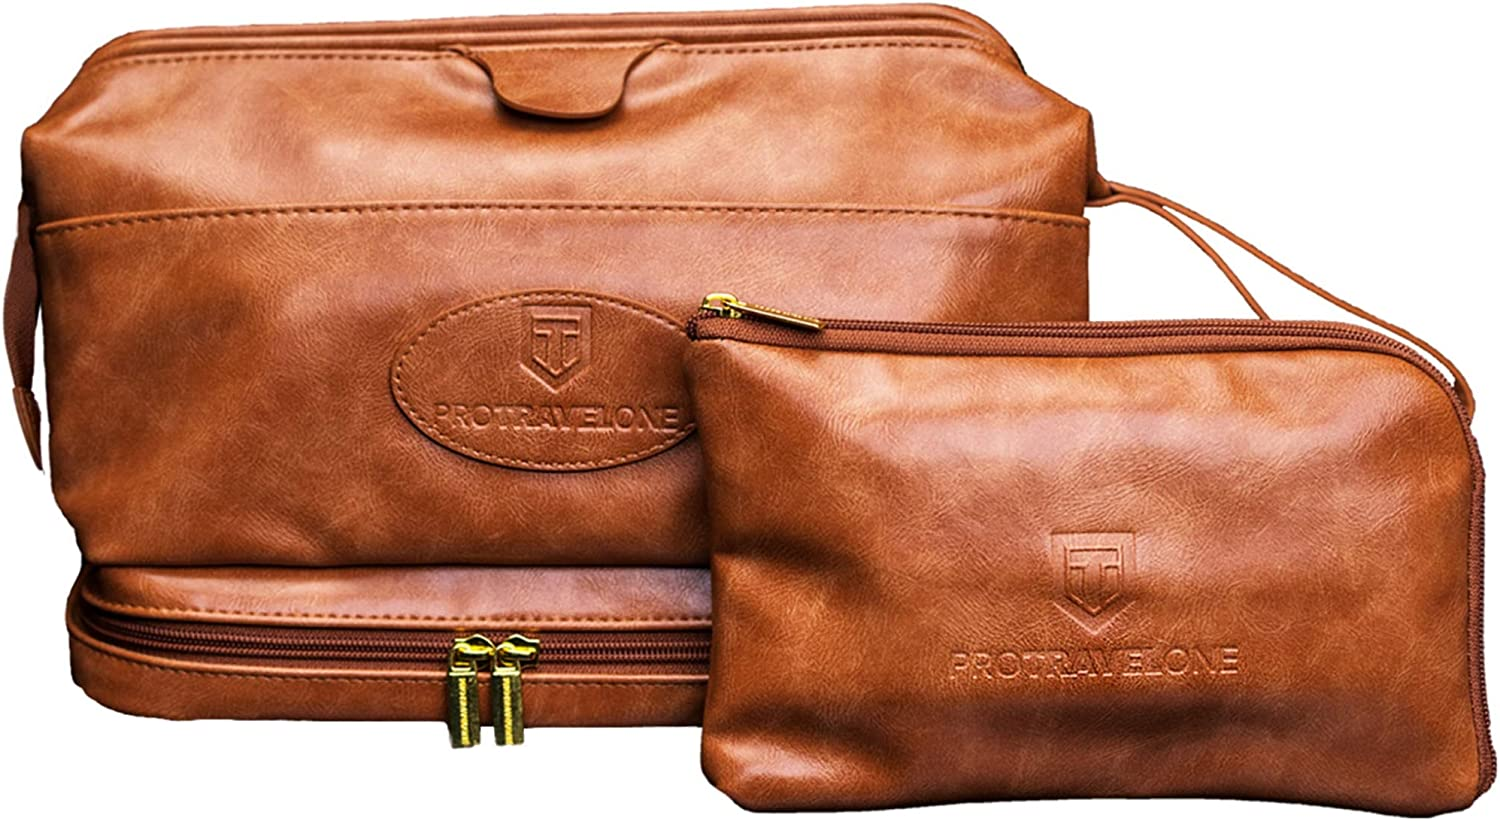 Protravelone Travel Toiletry Bag – Perfect Toiletry Bag for Men – Premium PU Leather Mens Toiletry Bag – Travel Kit for Men – Brown Toiletries Bag – Travel Bags For Toiletries – Travel Accessories